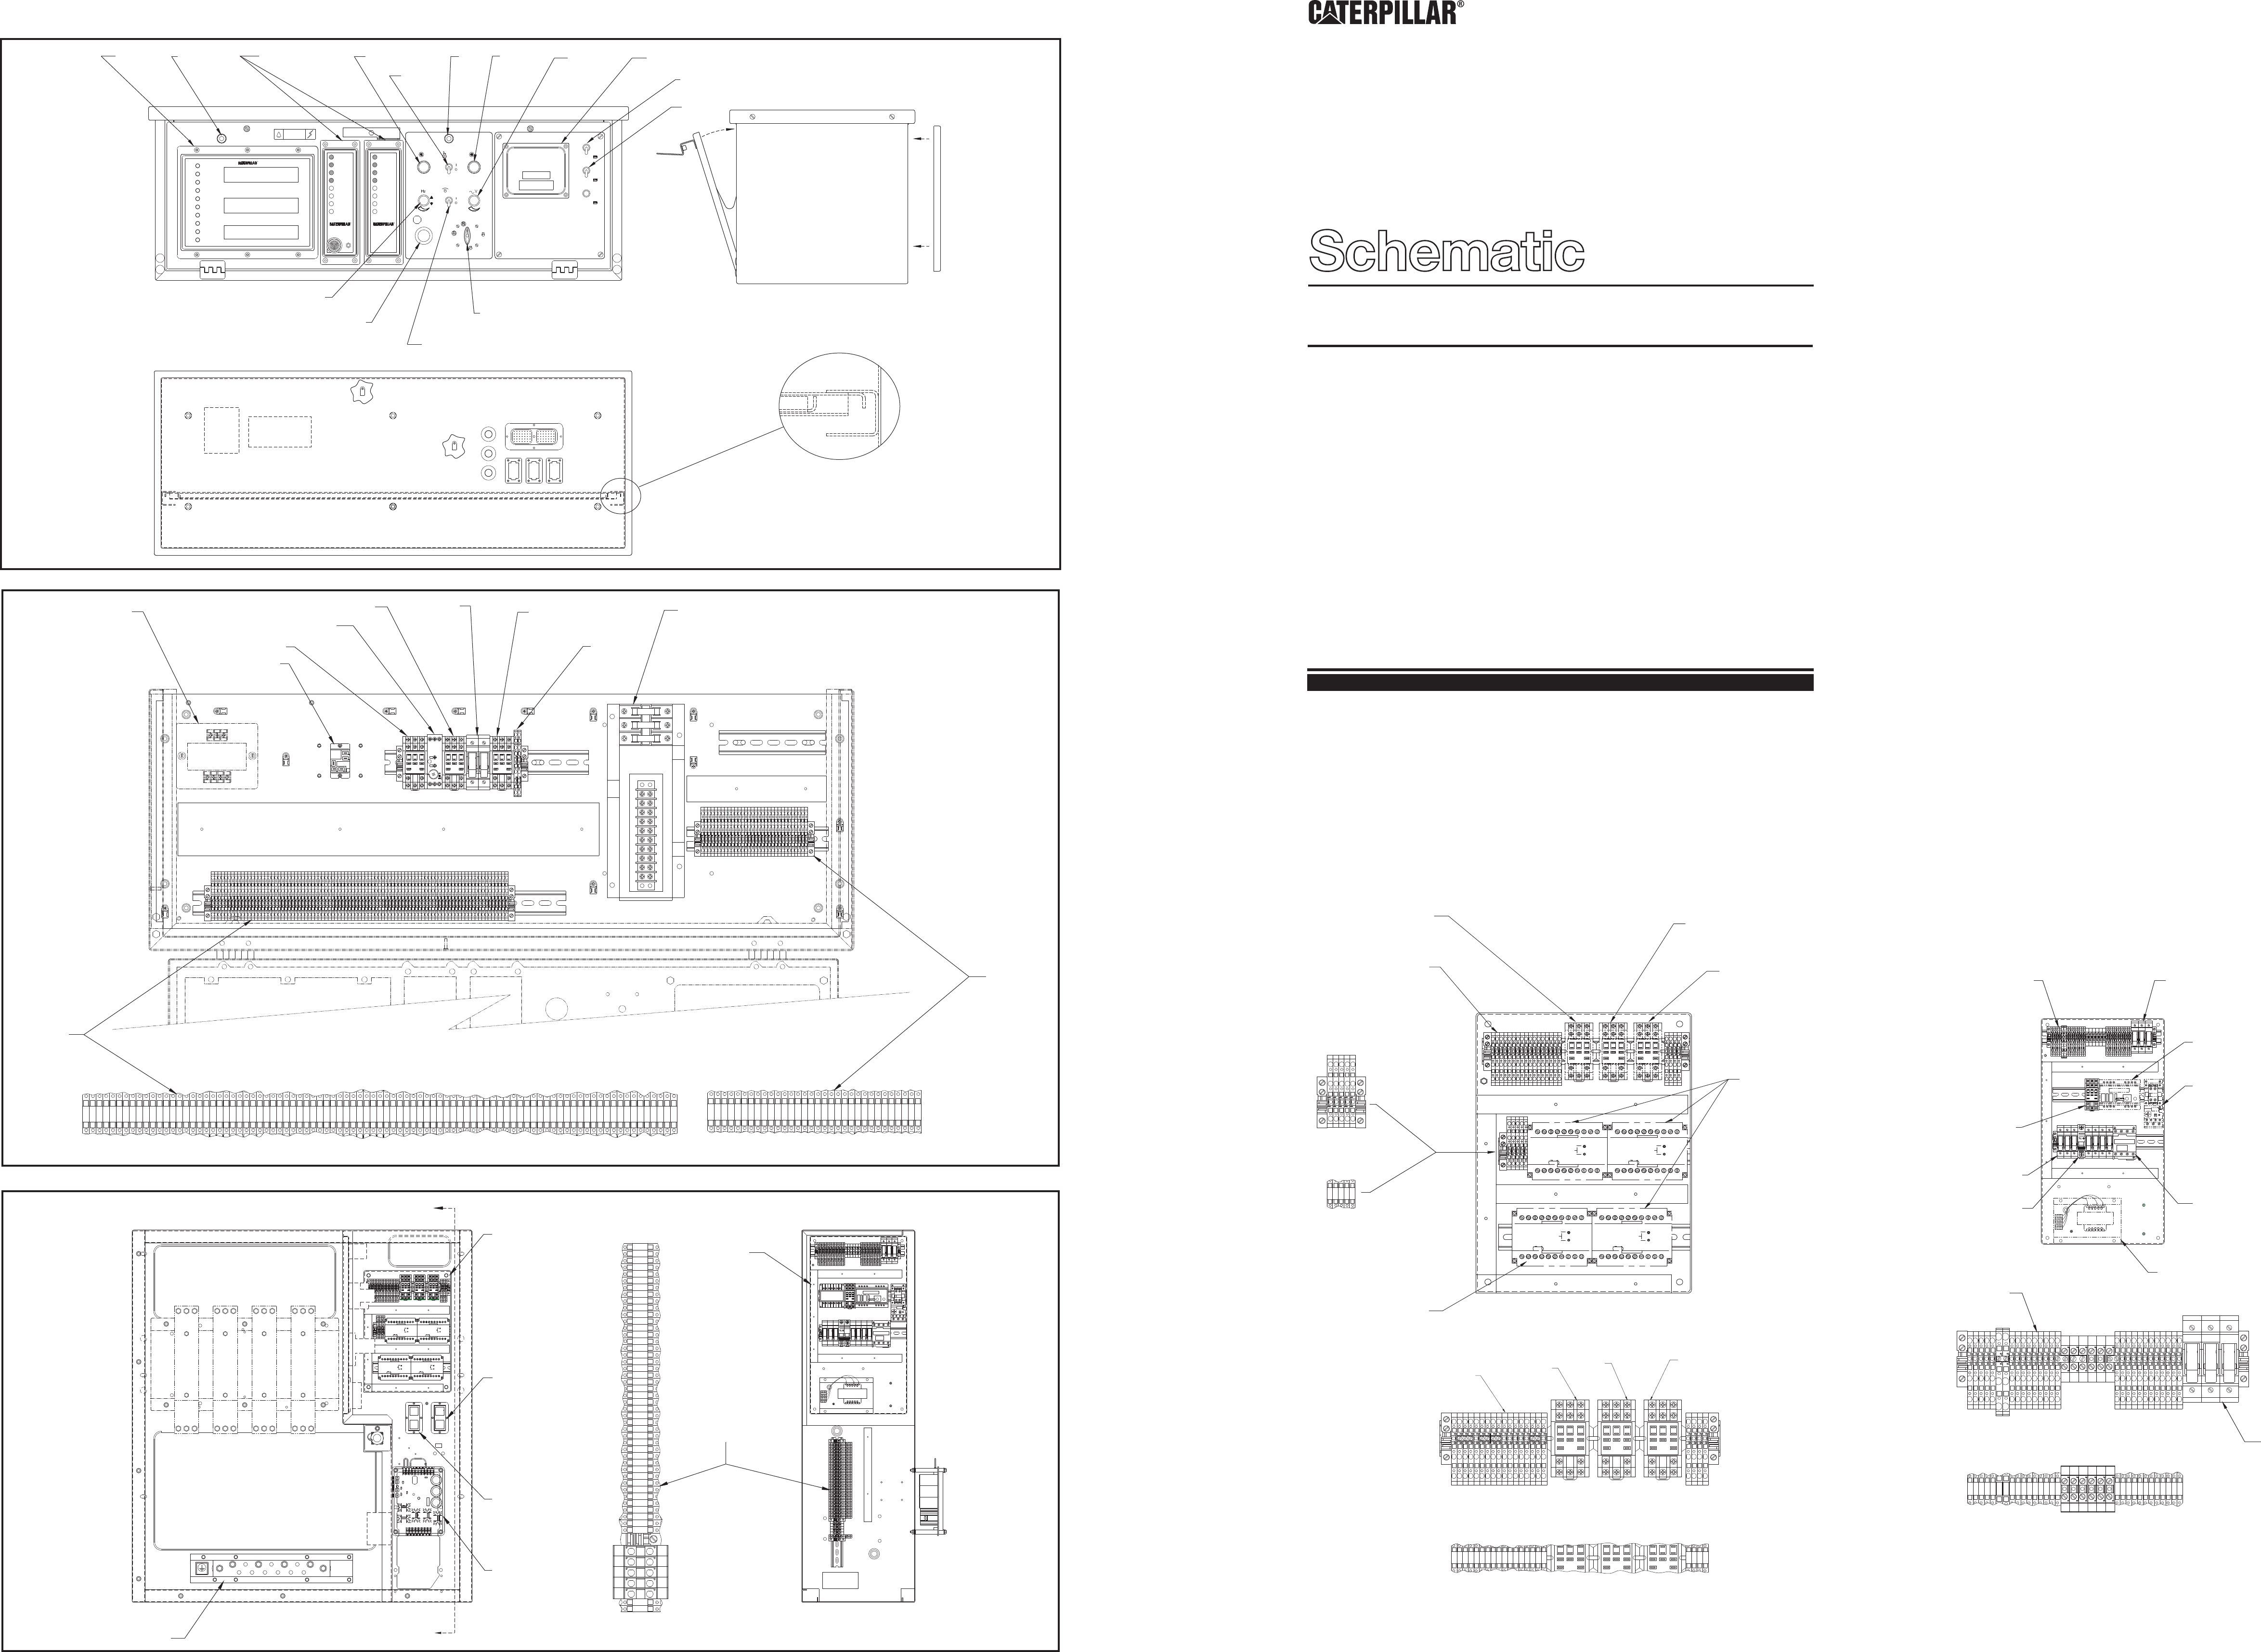 3456 GENERATOR SET WITH EMCP II+ ELECTRICAL SYSTEM | CAT Machines  Electrical SchematicCAT Machines Electrical Schematic